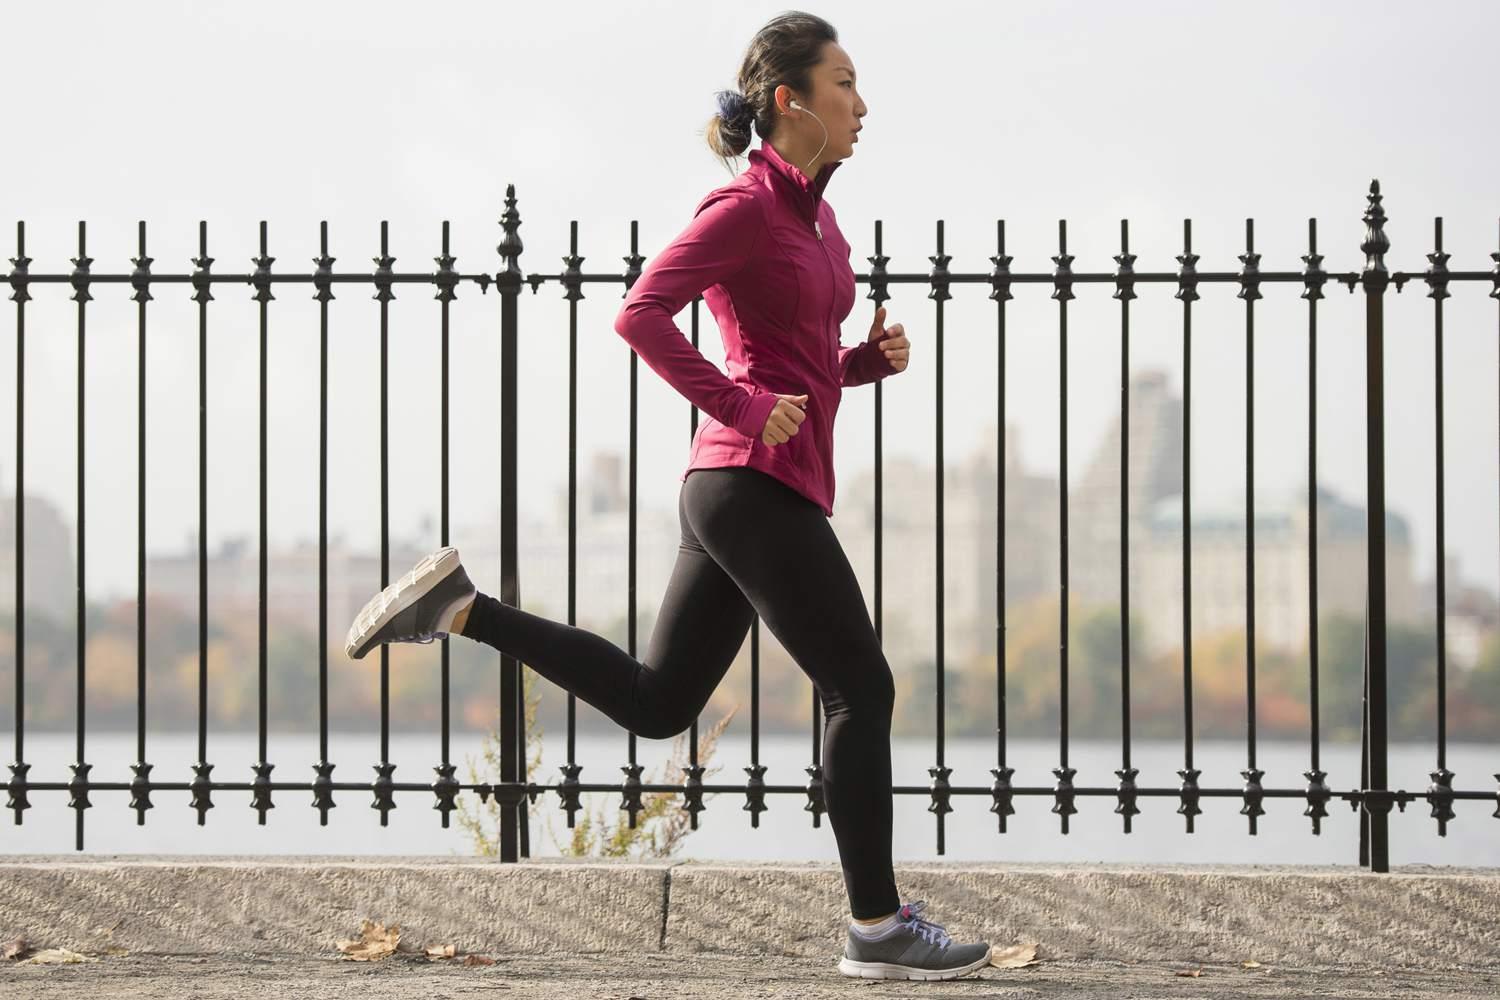 46 year old woman runner